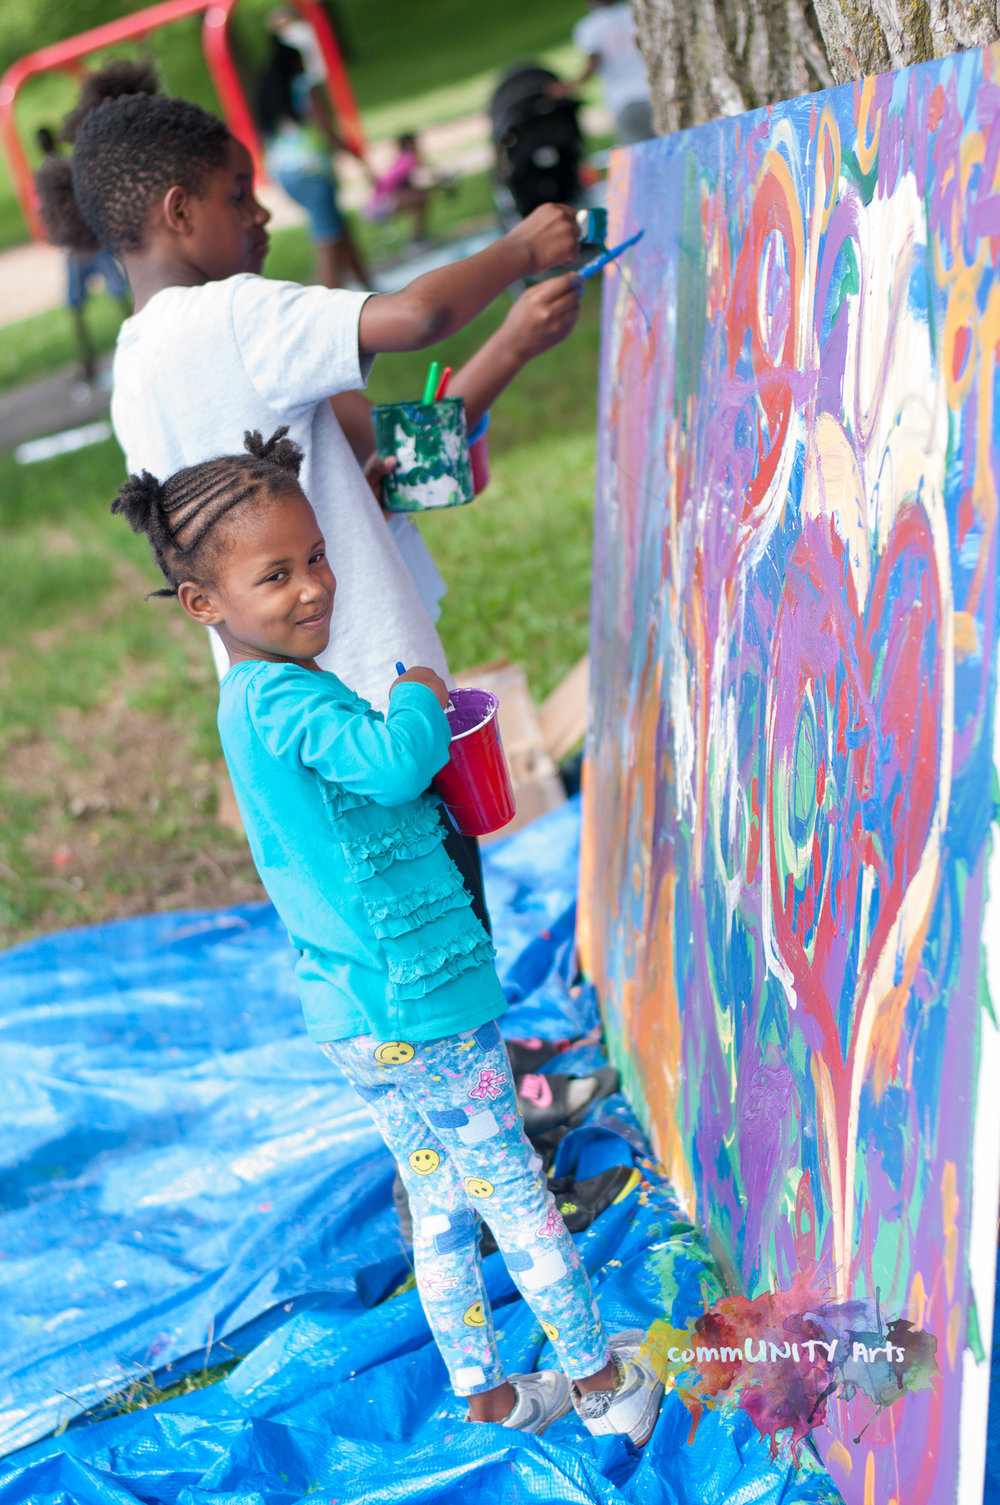 06.17.17 Art in the Park-39.jpg